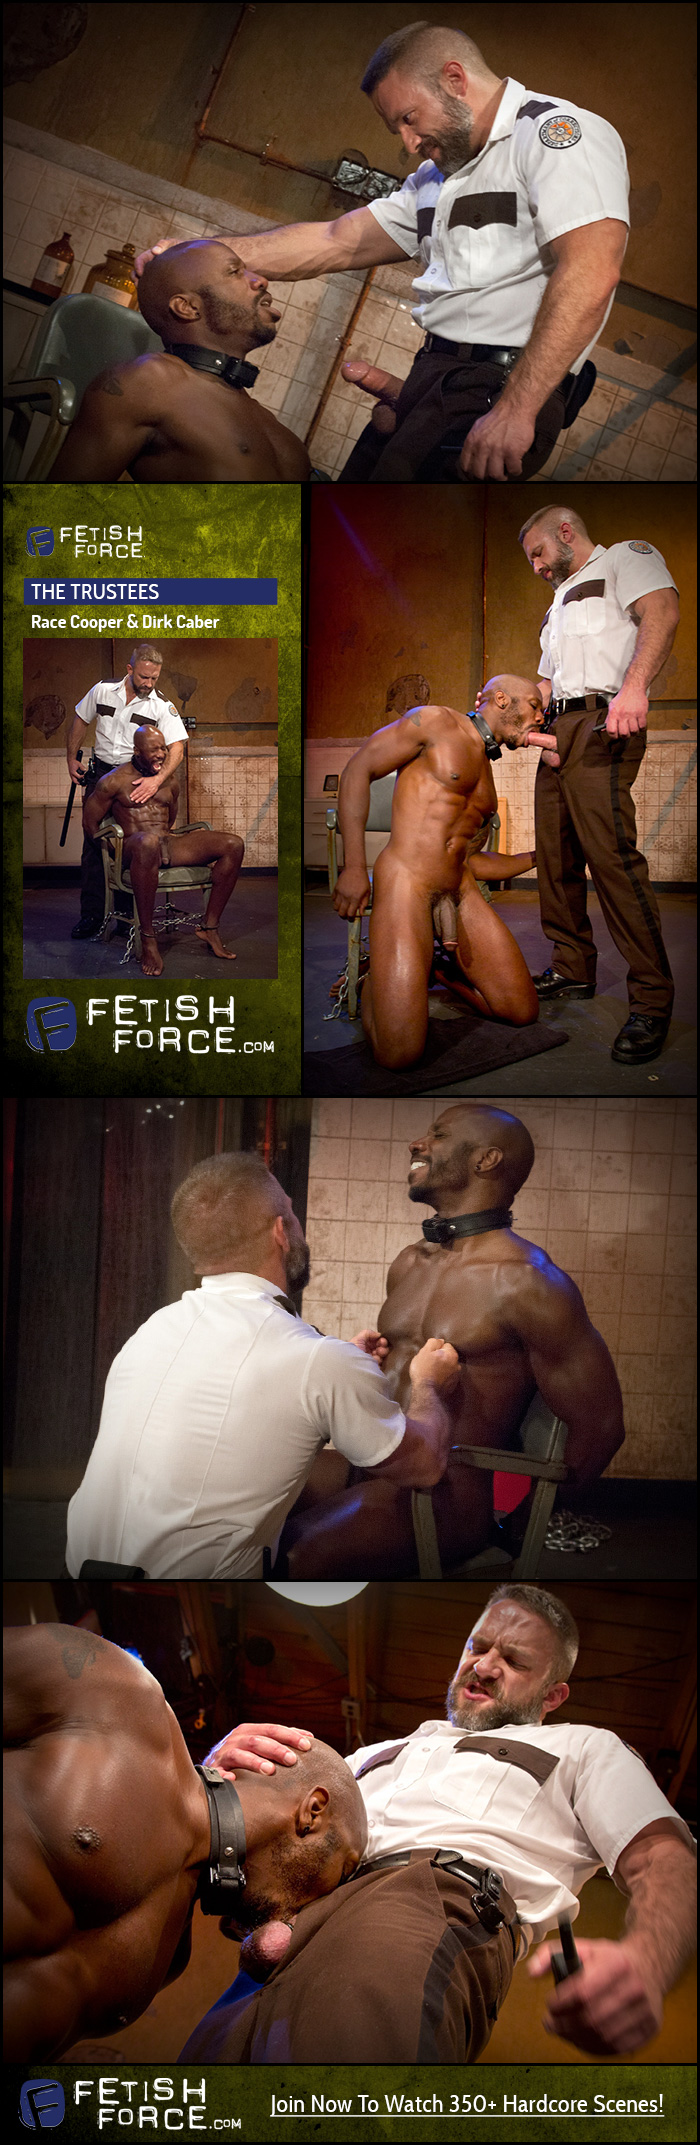 Fetish Force – Race Cooper & Dirk Caber